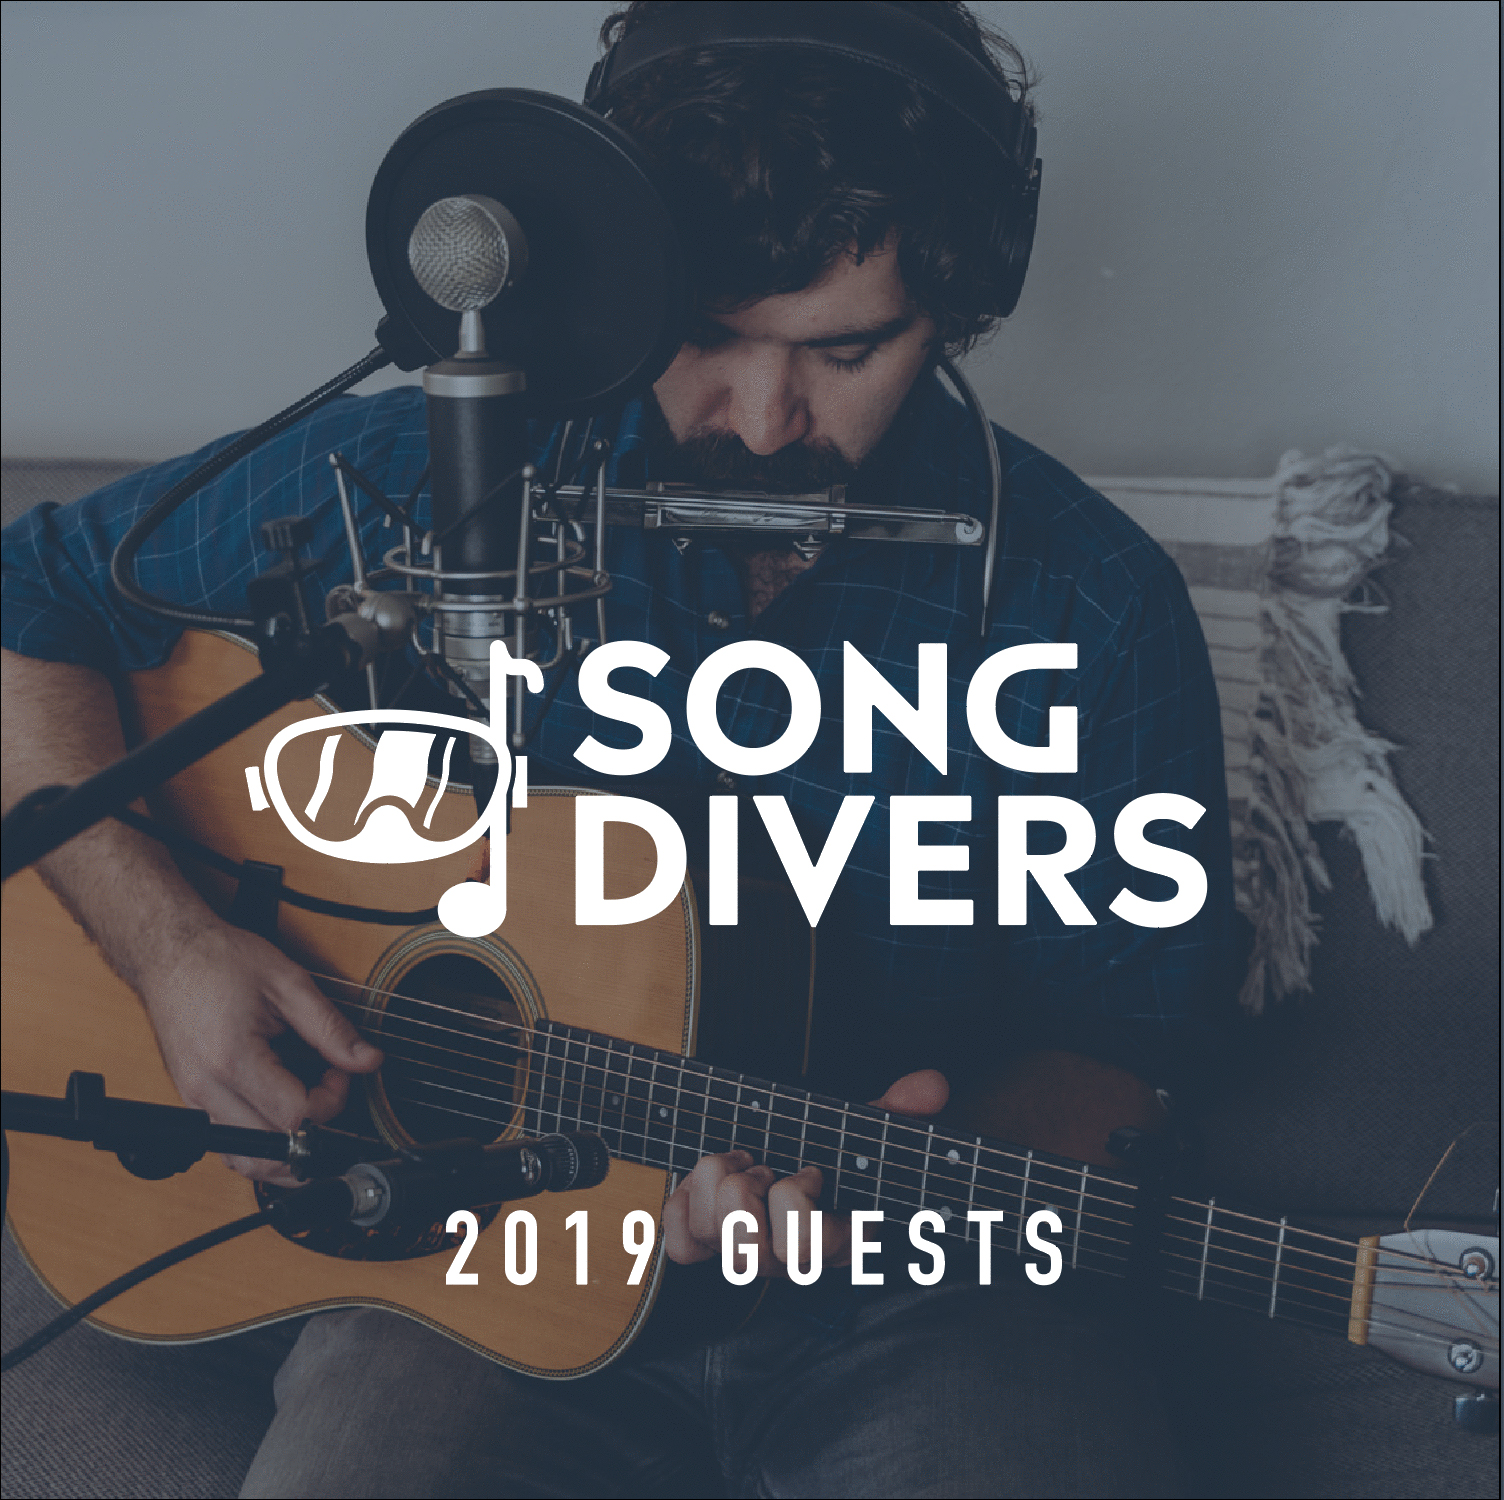 SongDivers_2019_Featured_Spotify Playlist Card.jpg